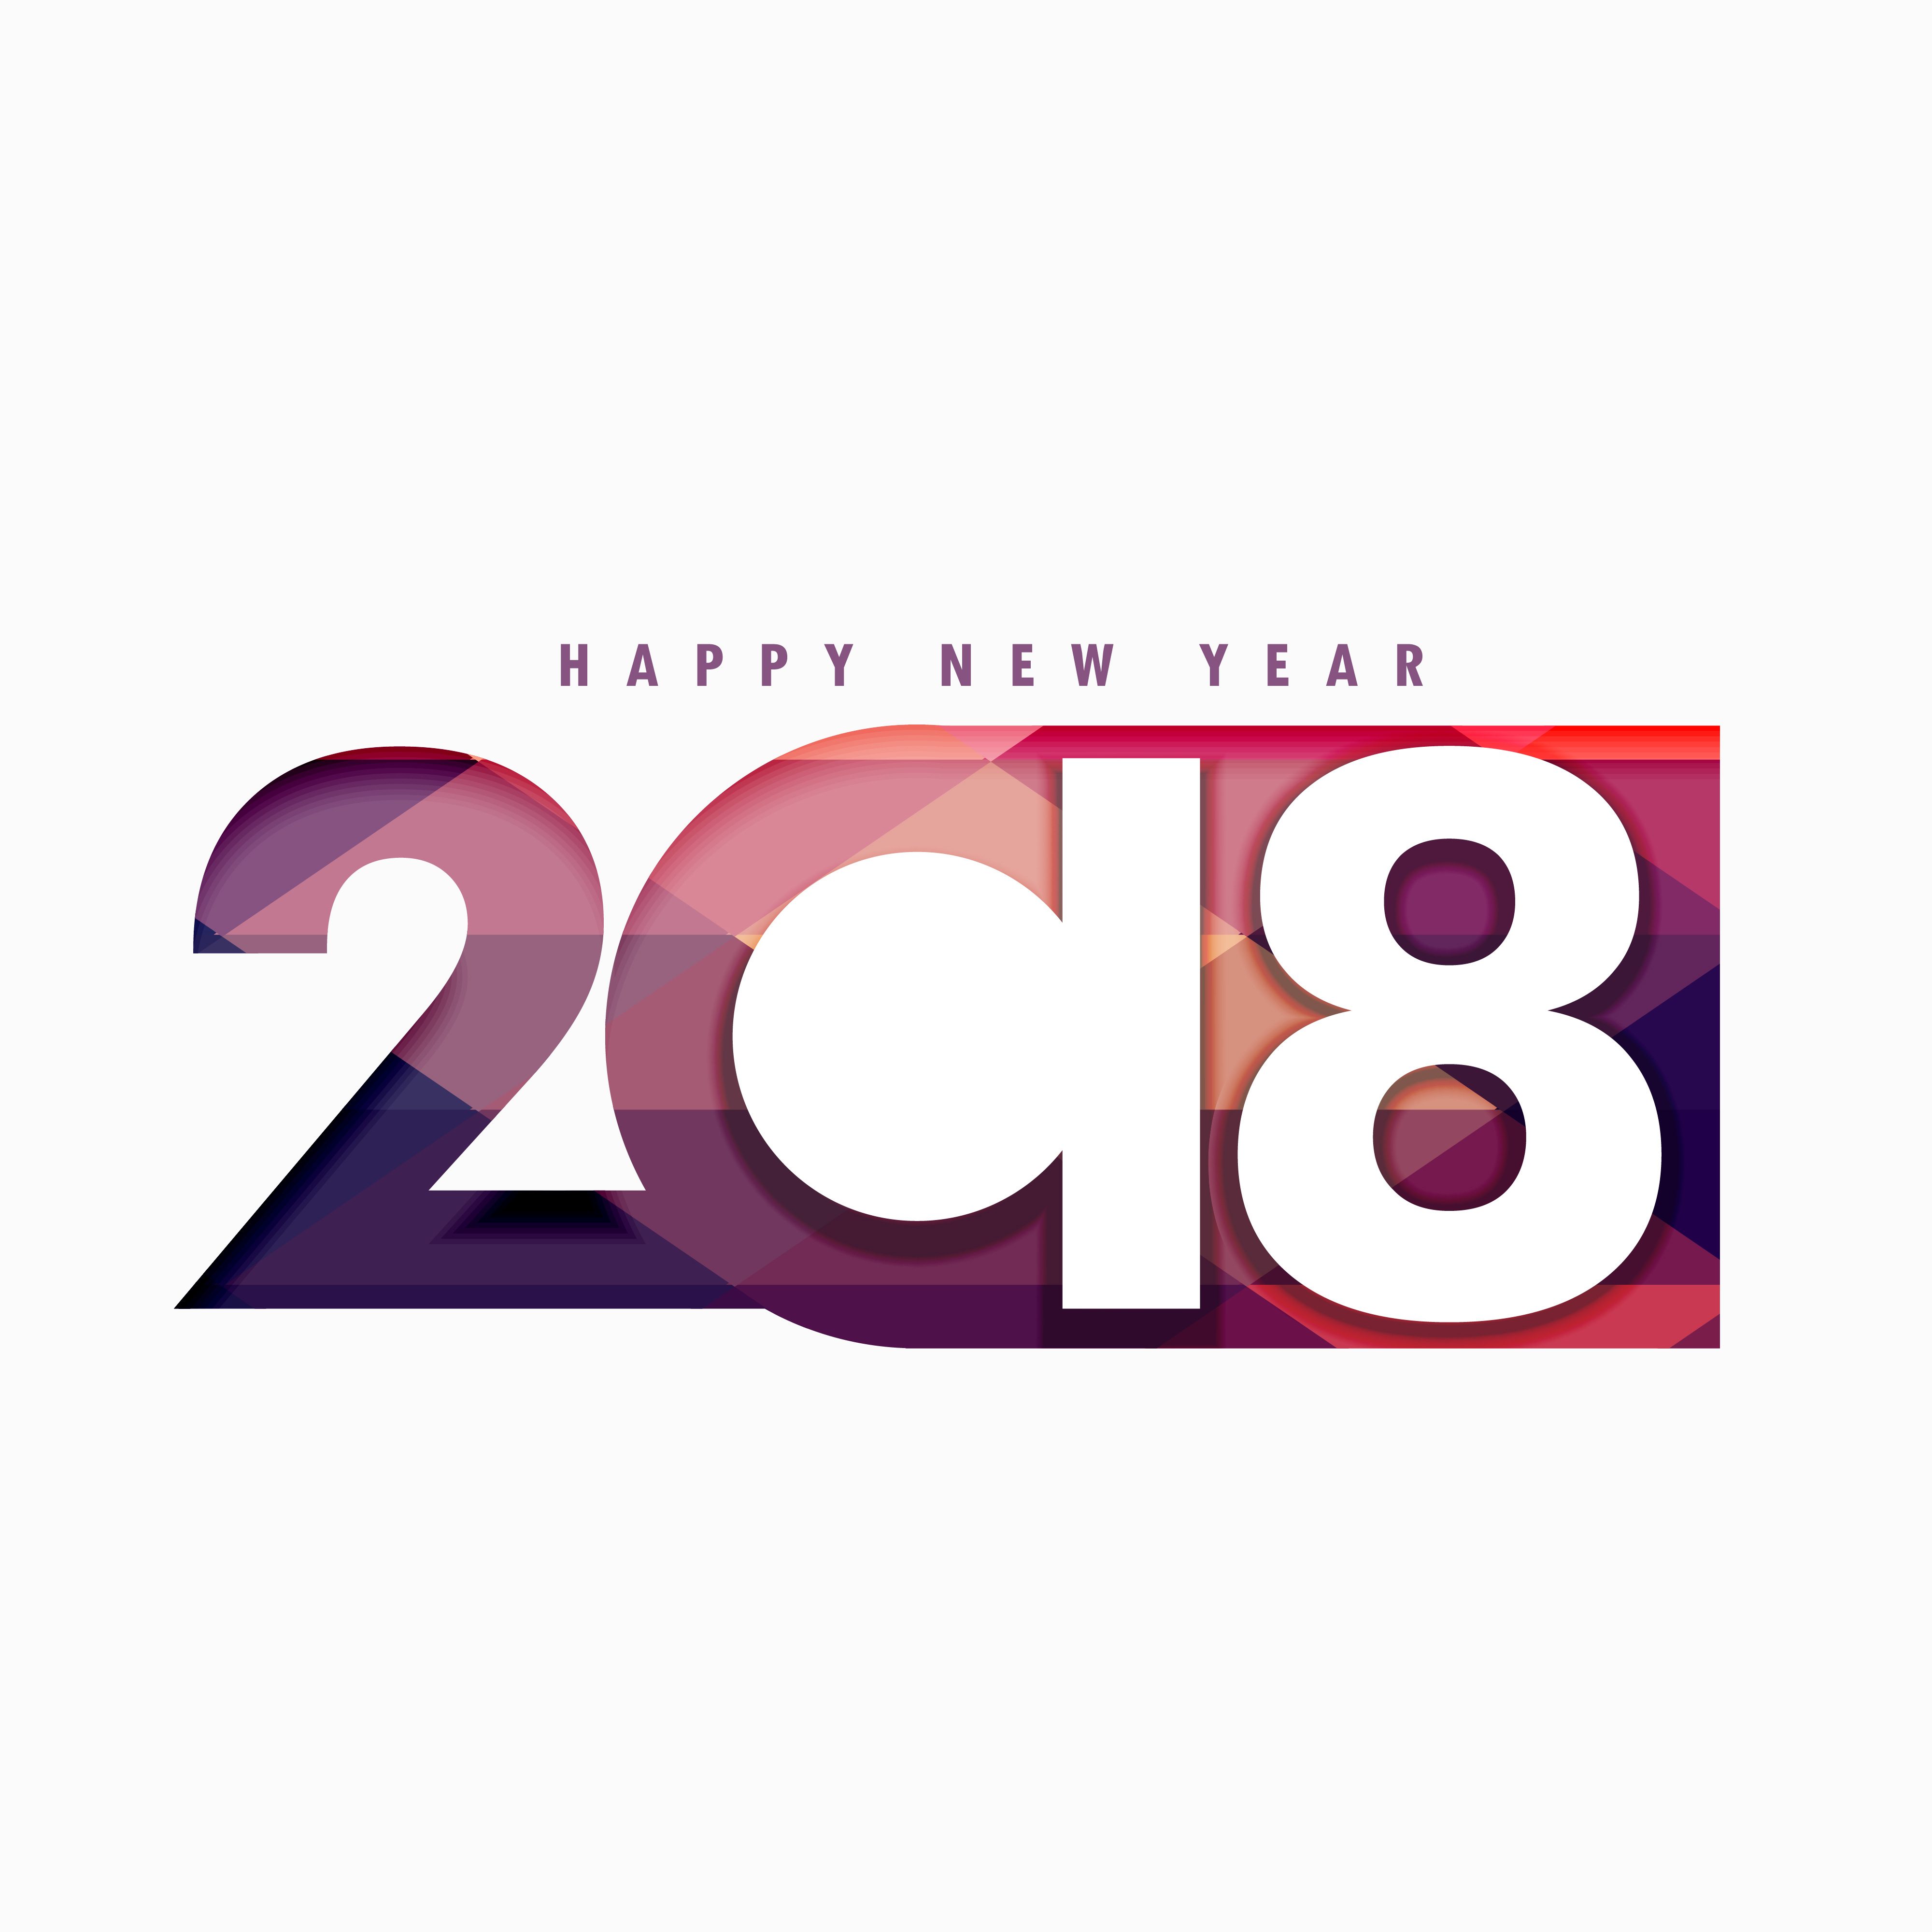 happy new year 2018 text in creative style download free vector art stock graphics images